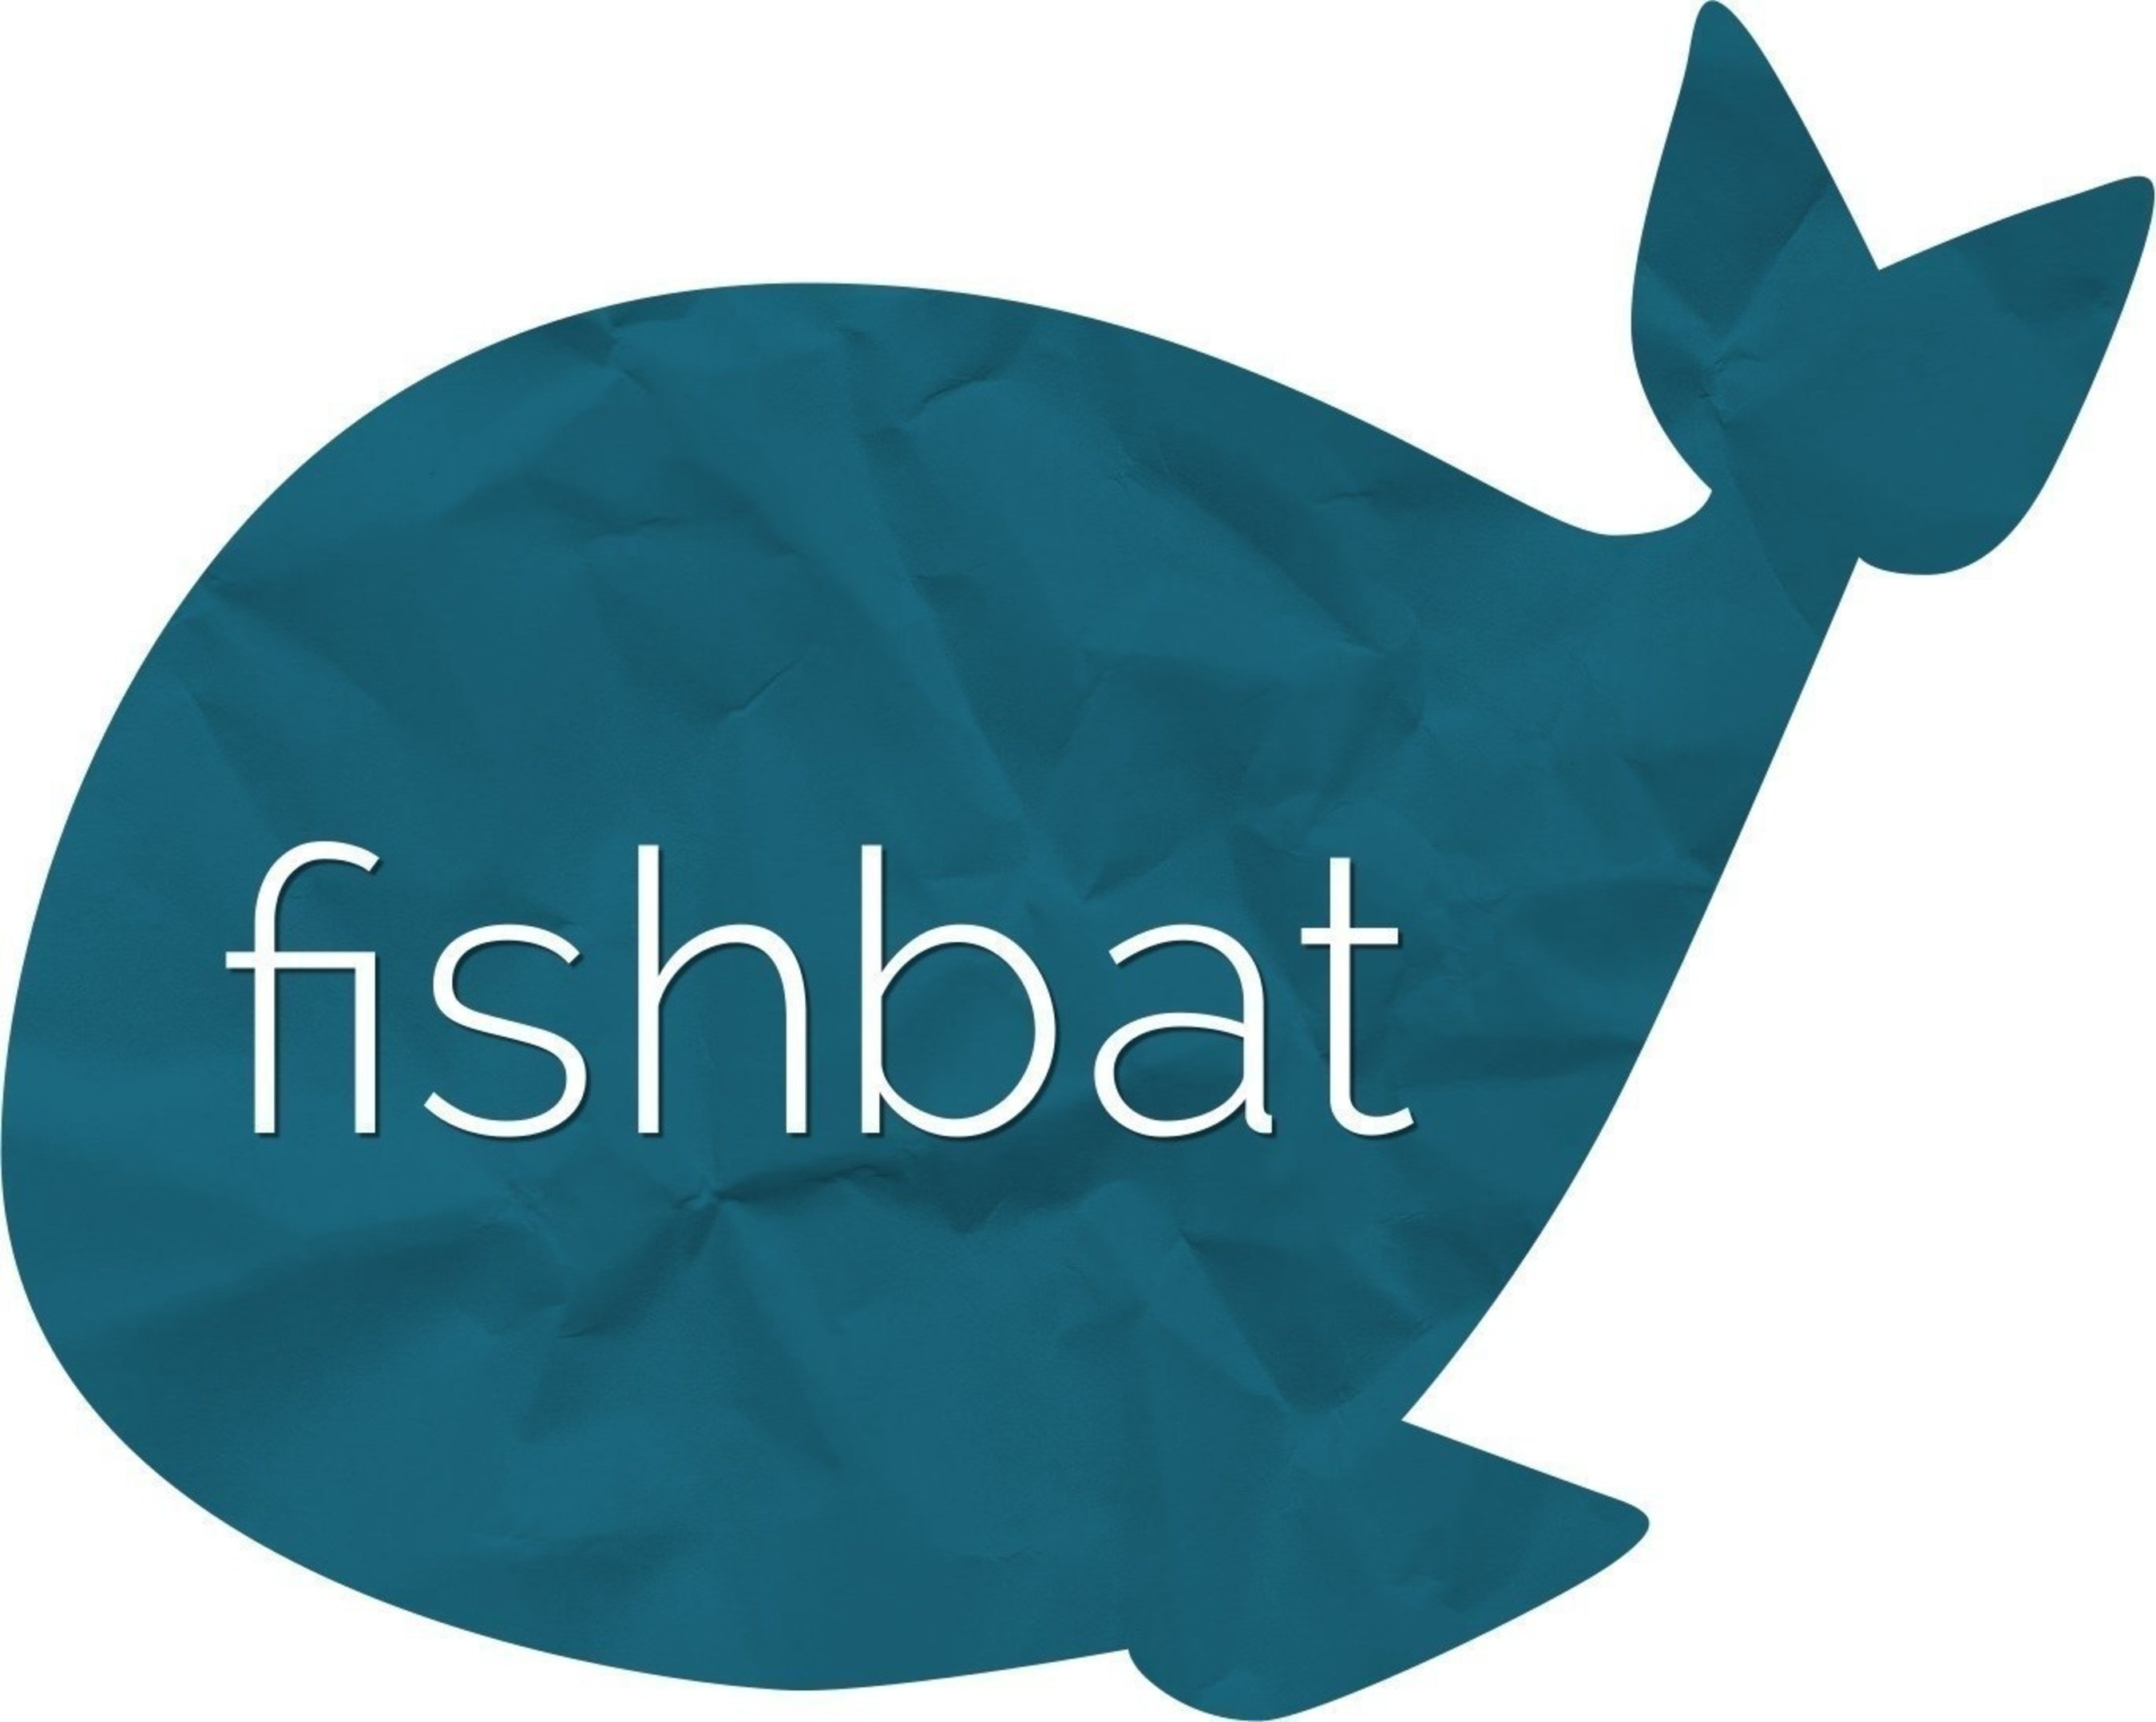 fishbat Shares 3 Ways Yacht Shipping Companies Can Increase Social Engagement on Social Channels